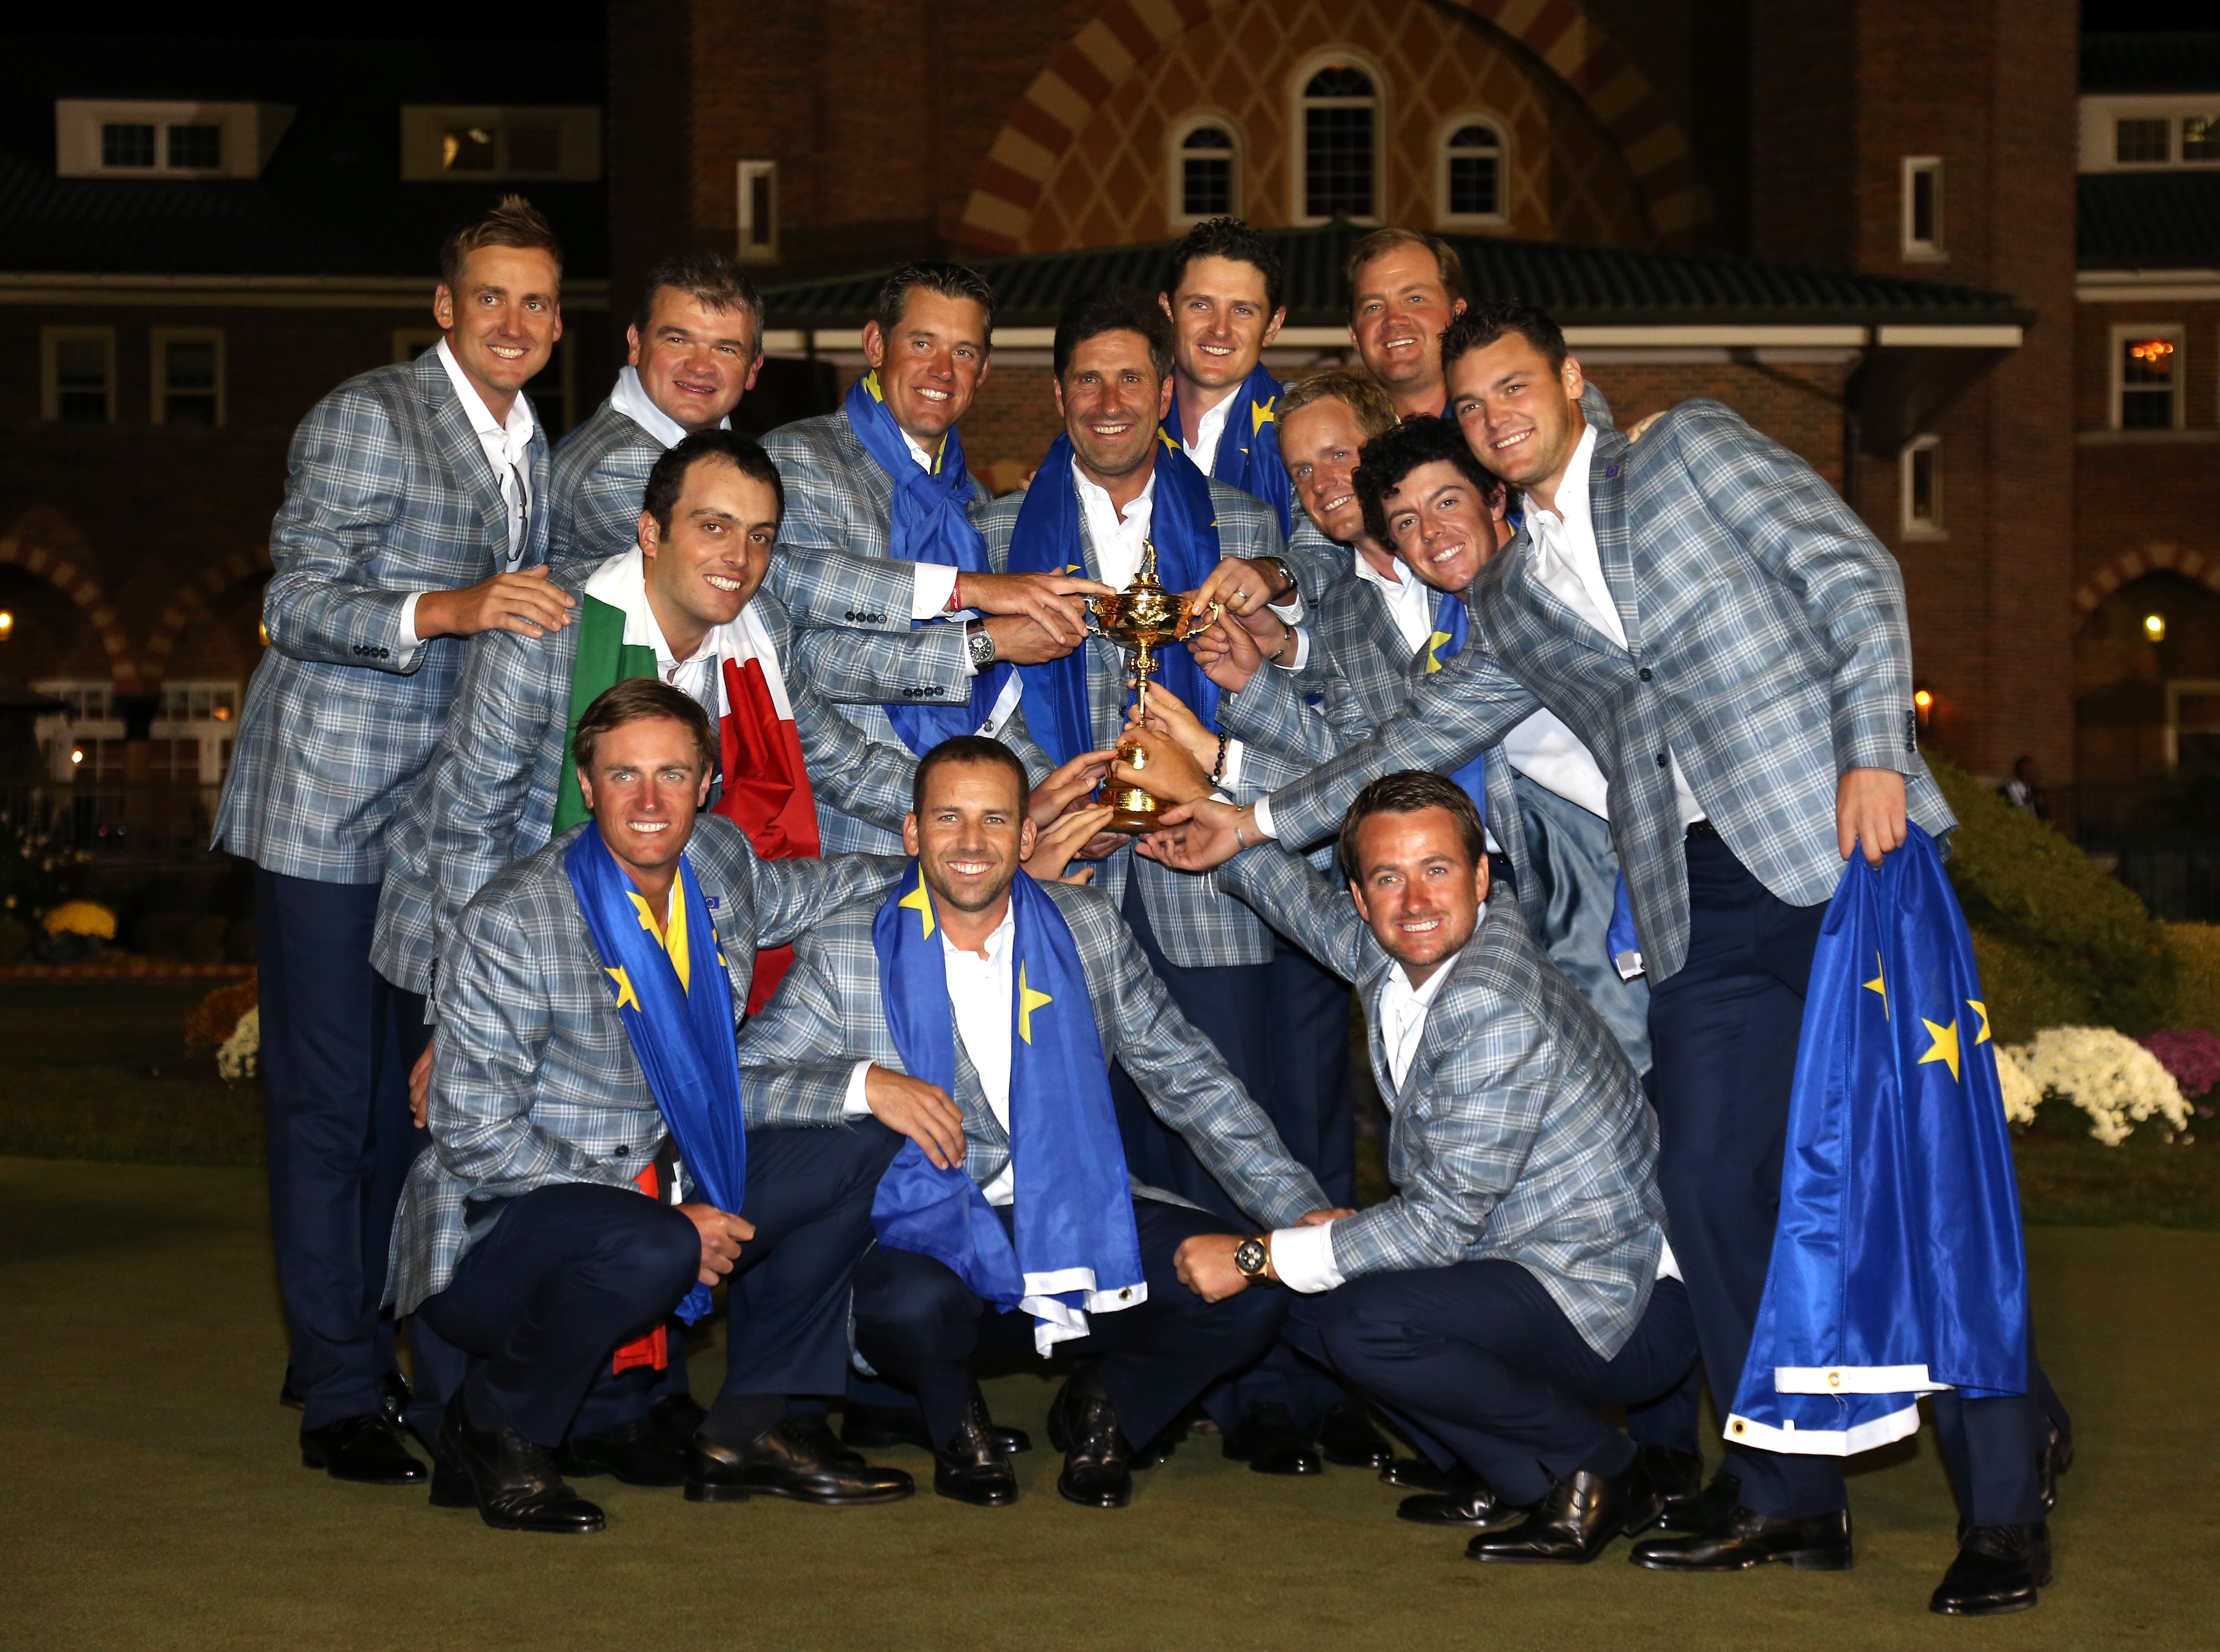 Team Europe, 2012: The team poses with the Ryder Cup after defeating the USA 14.5 - 13.5.